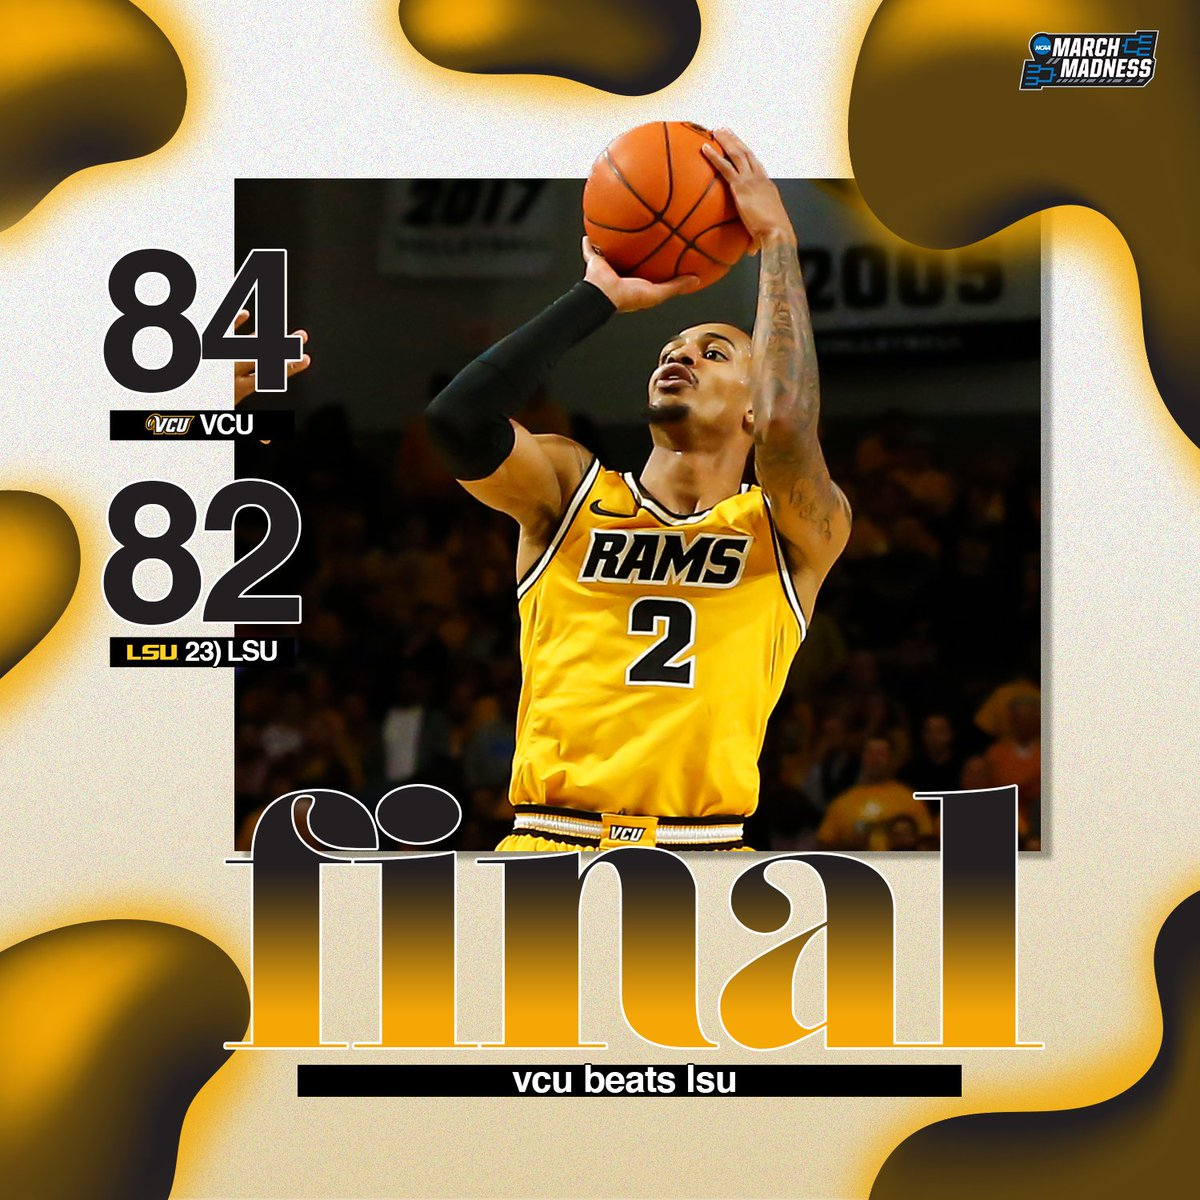 HAVOC. CITY!  VCU spoils Will Wade's return to the Siegel Center with the win over No. 23 LSU! #LetsGoVCU<br>http://pic.twitter.com/jdE0zykNpz